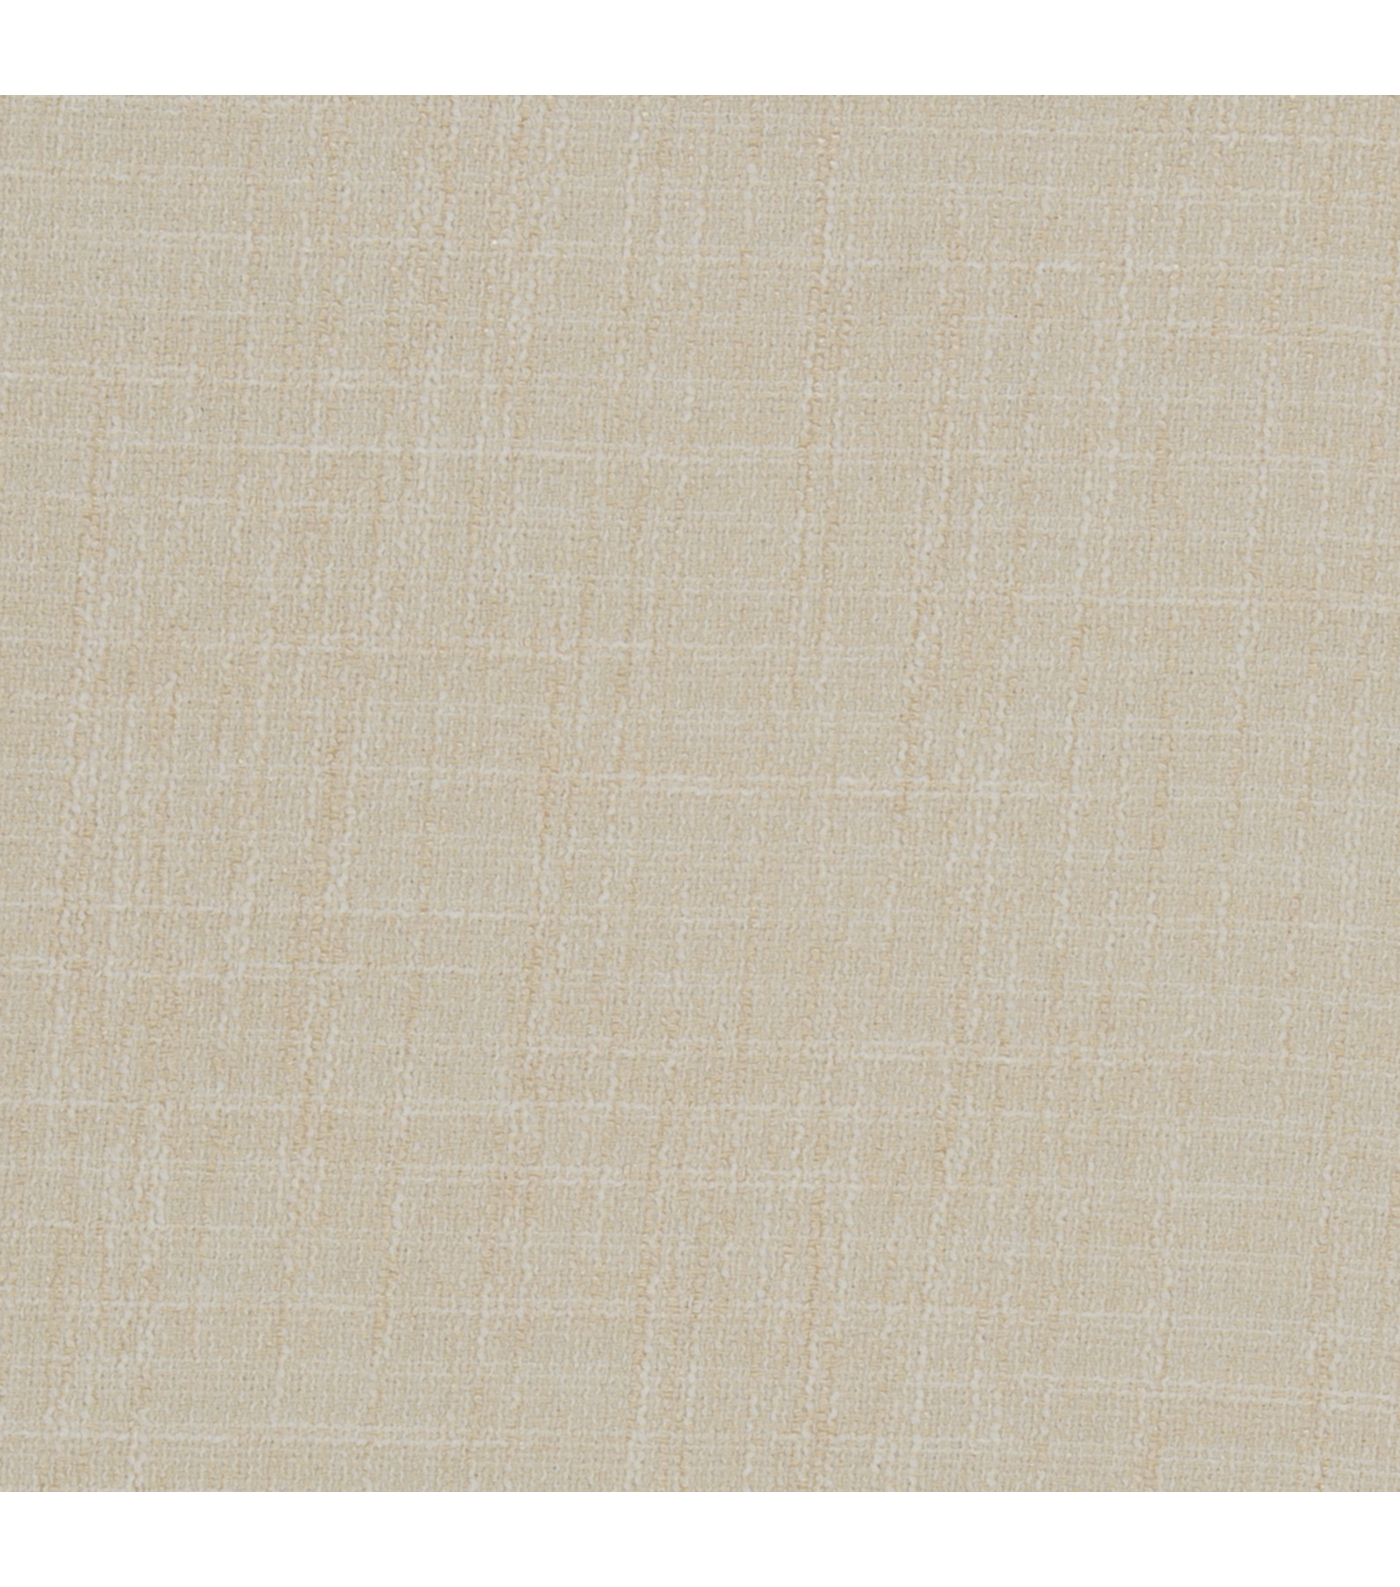 Nate Berkus Home Decor Fabric 54\u0022-Asher Latex Winter White